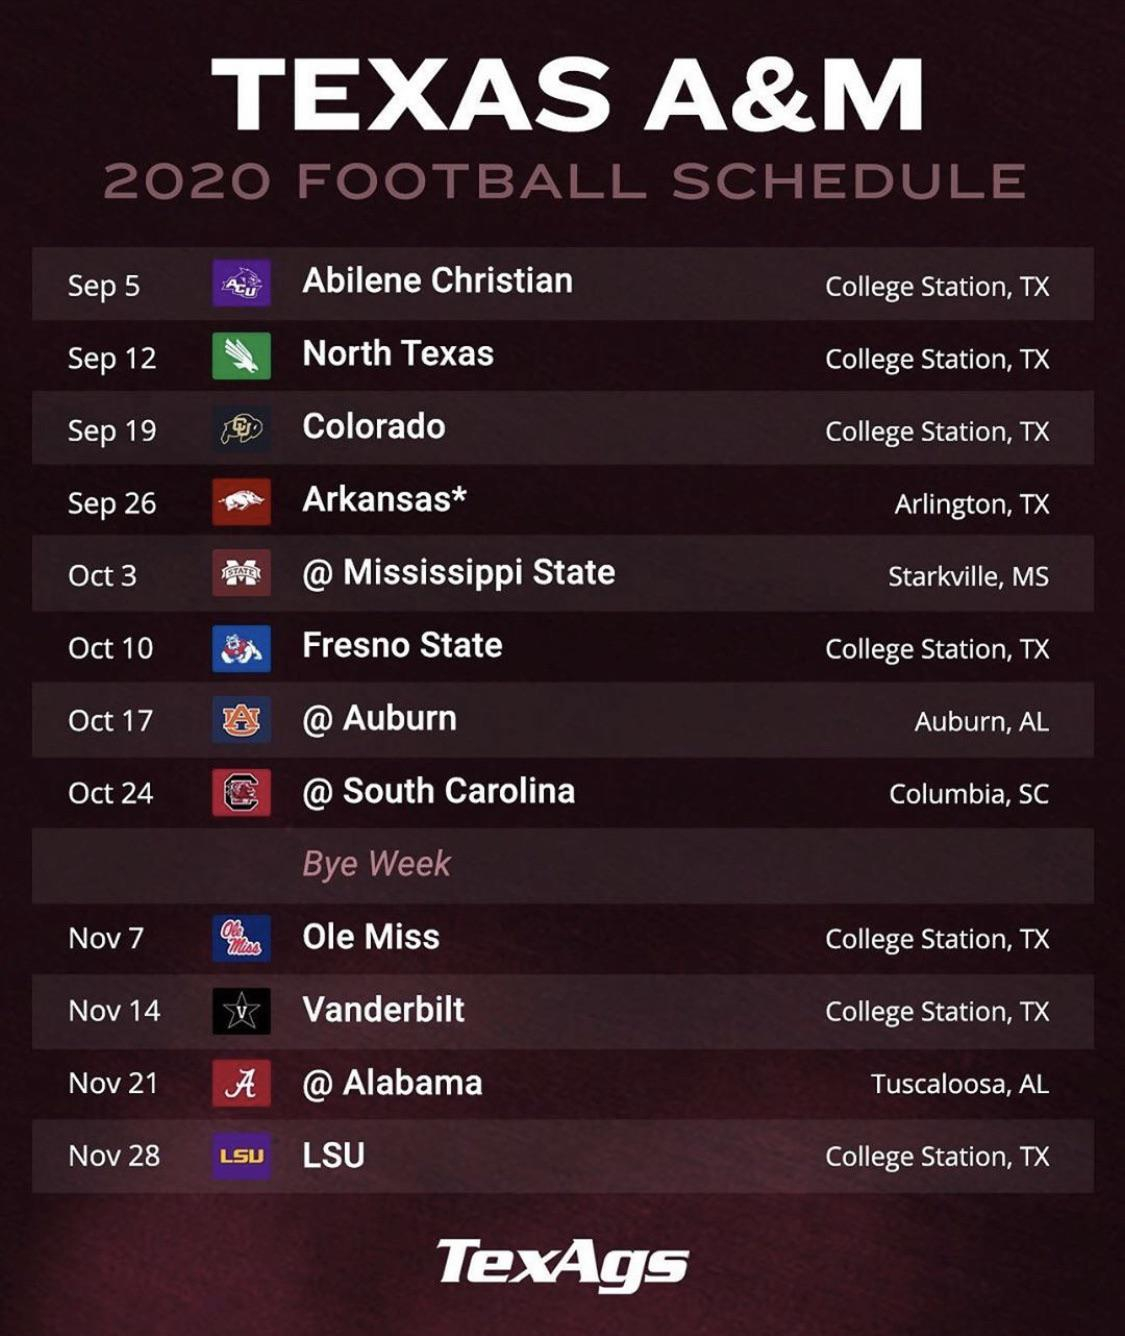 Texas A M 2020 Football Schedule Released 12thMan